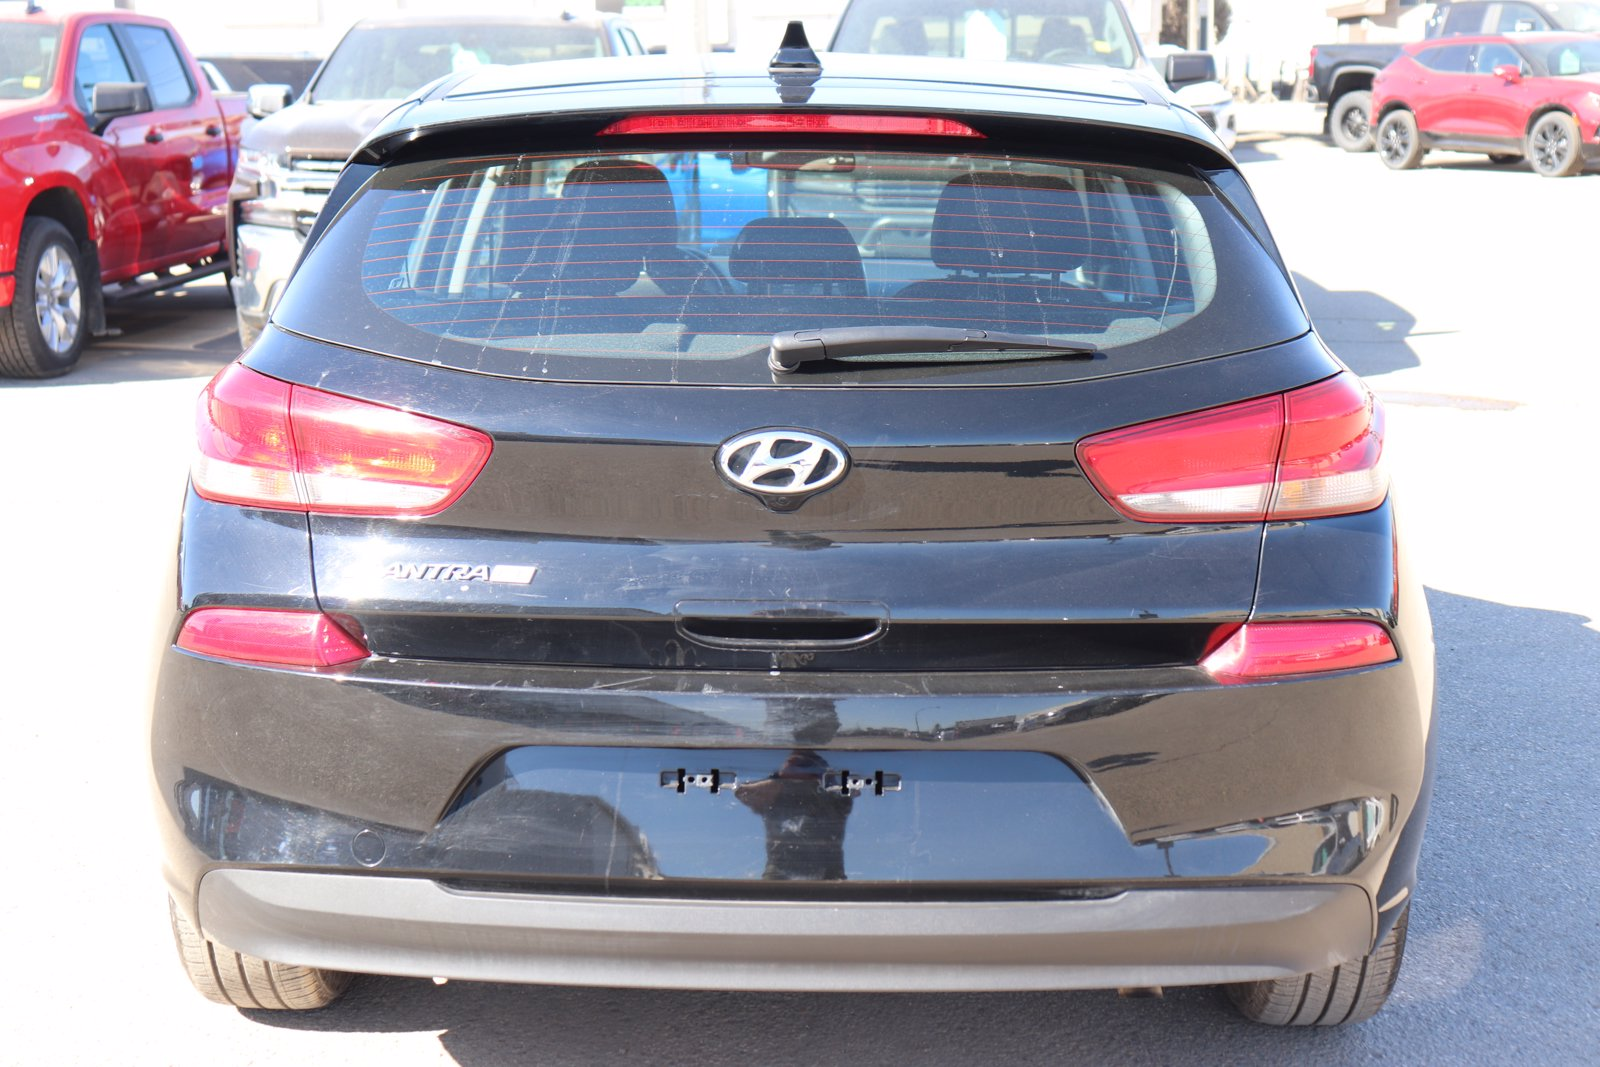 Certified Pre-Owned 2019 Hyundai Elantra GT Preferred- Heated Seats, Back Up Camera, Alloy Wheels